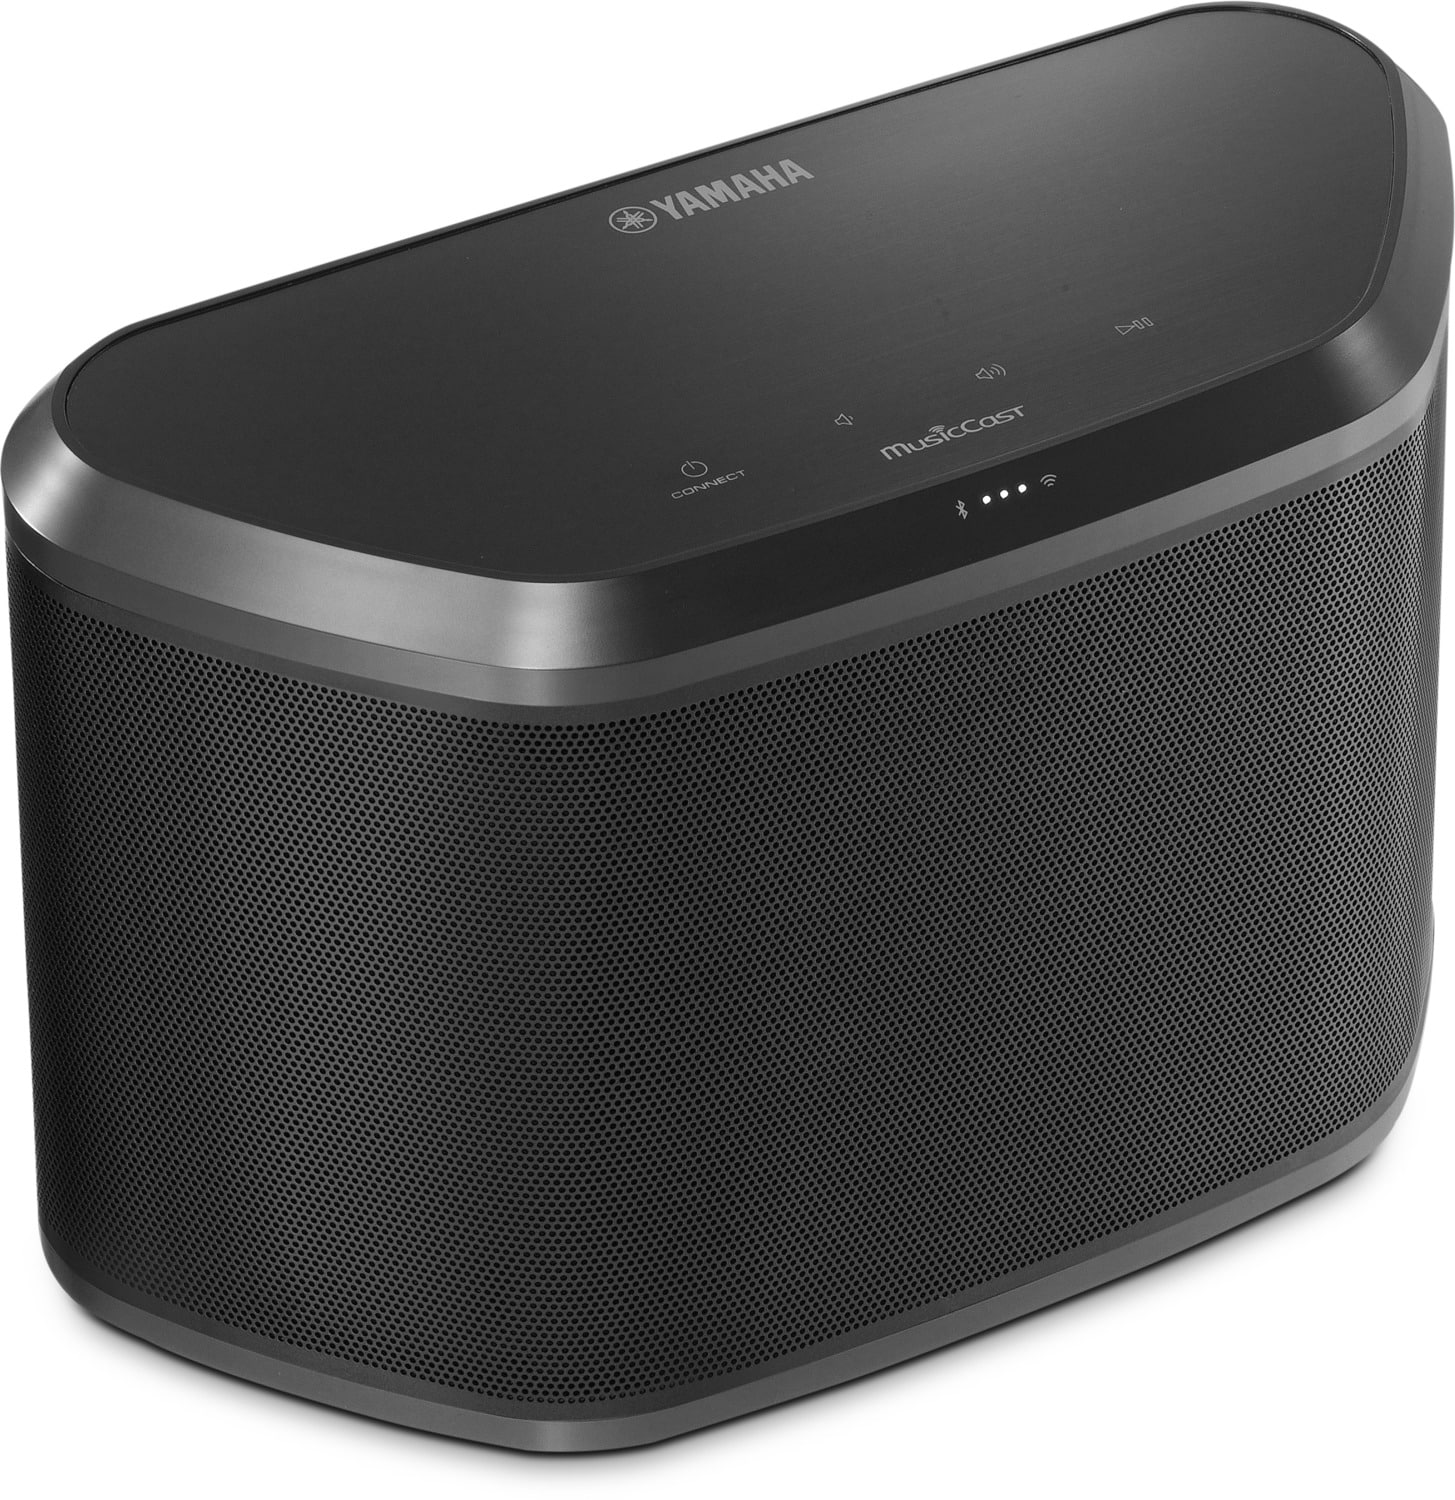 Sound Systems - Yamaha WX-030 Wireless Streaming Speaker – Black